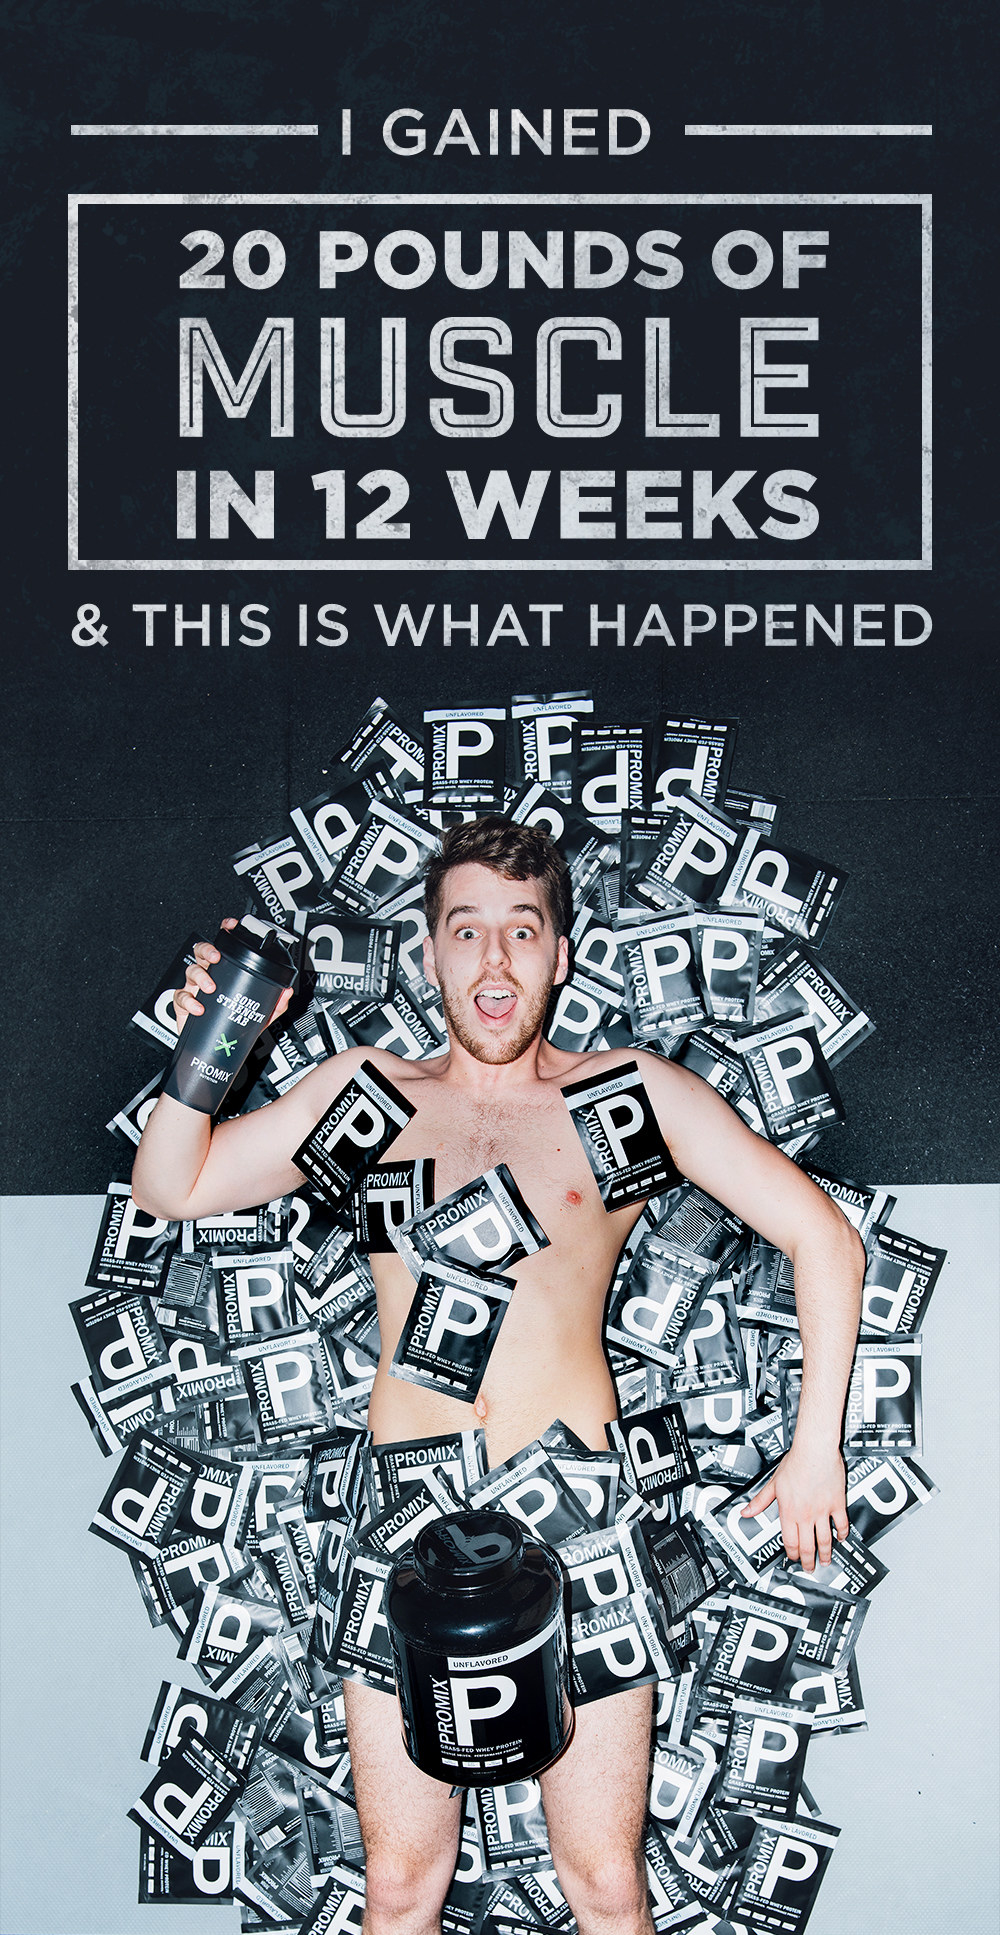 I Gained 20 Pounds Of Muscle In 12 Weeks And This Is What Happened